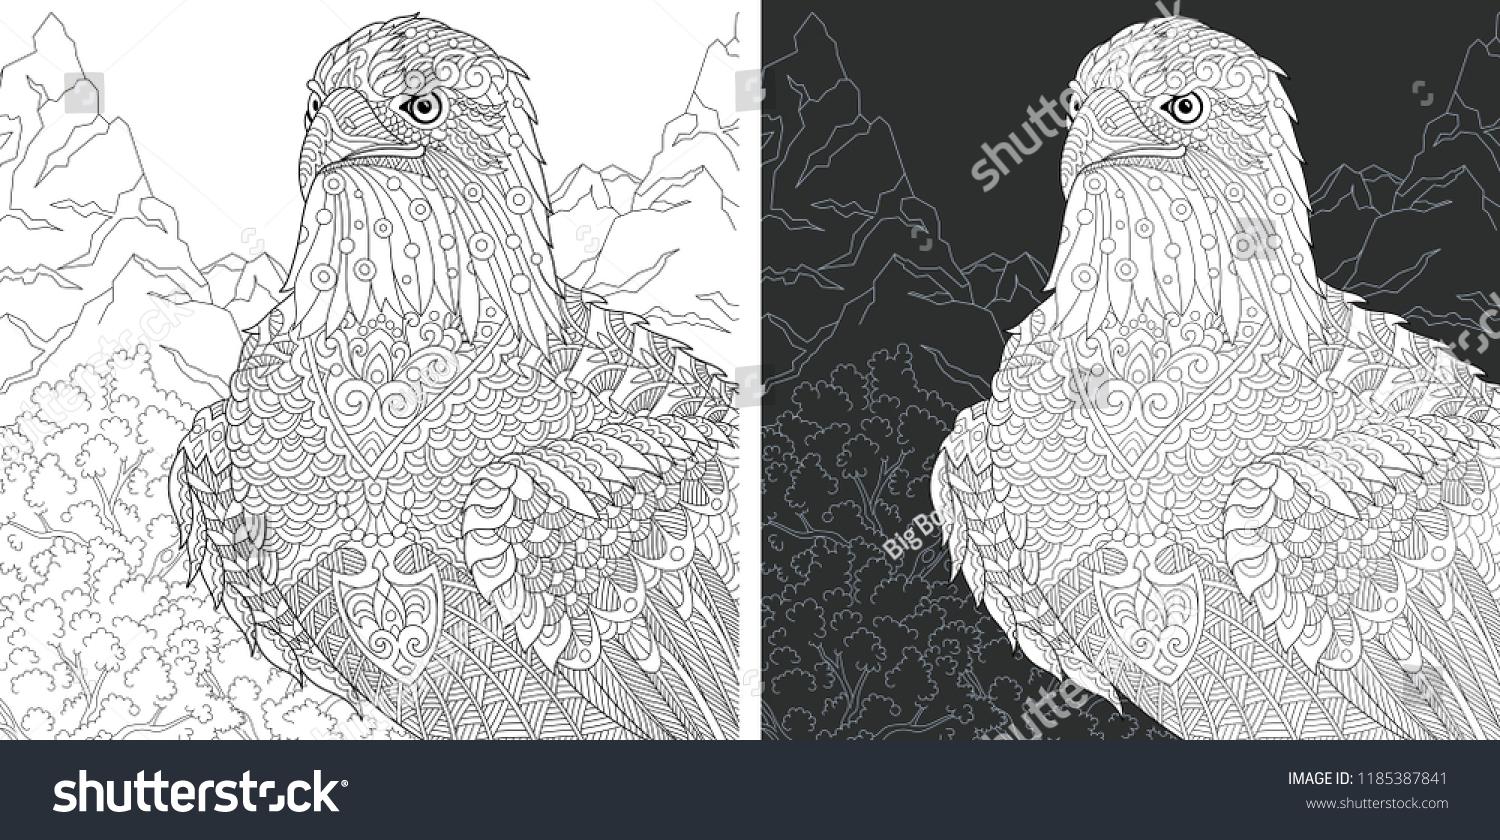 Bald Eagle Coloring Page for Kids | Eagle painting, Eagle art ... | 840x1500